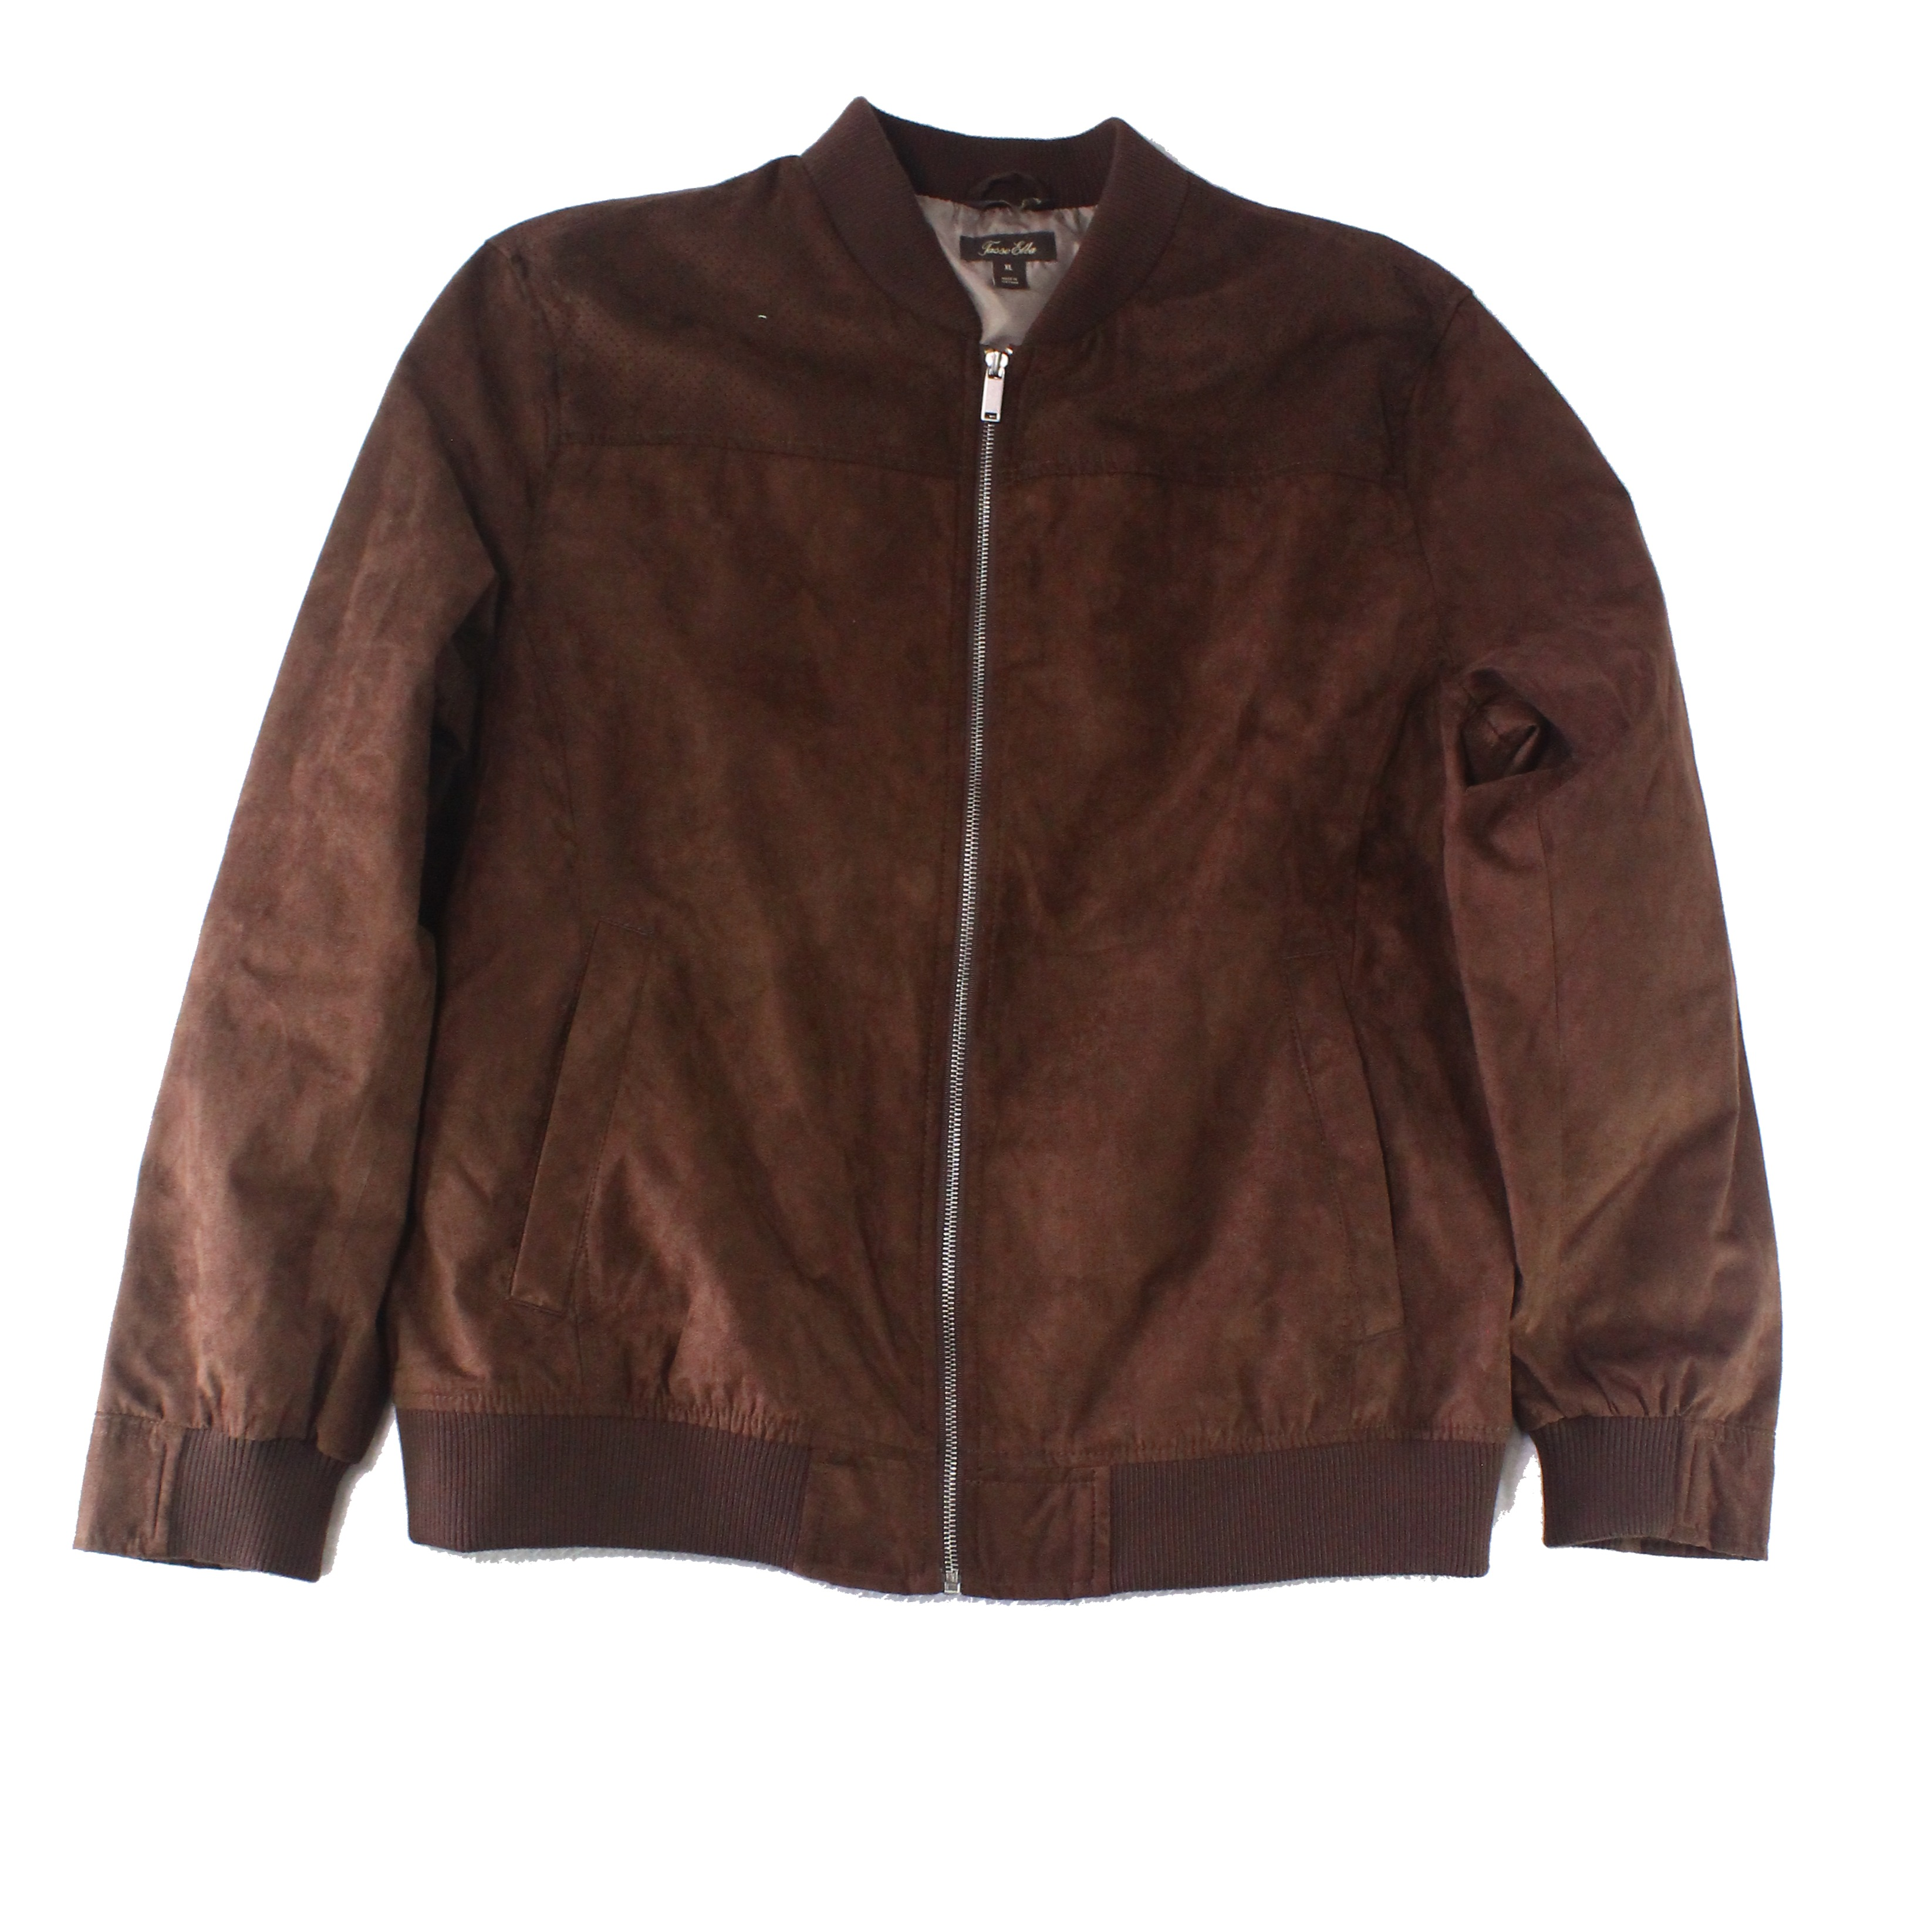 Tasso-Elba-Mens-Jacket-Brown-Size-Large-L-Full-Zip-Flight-Bomber